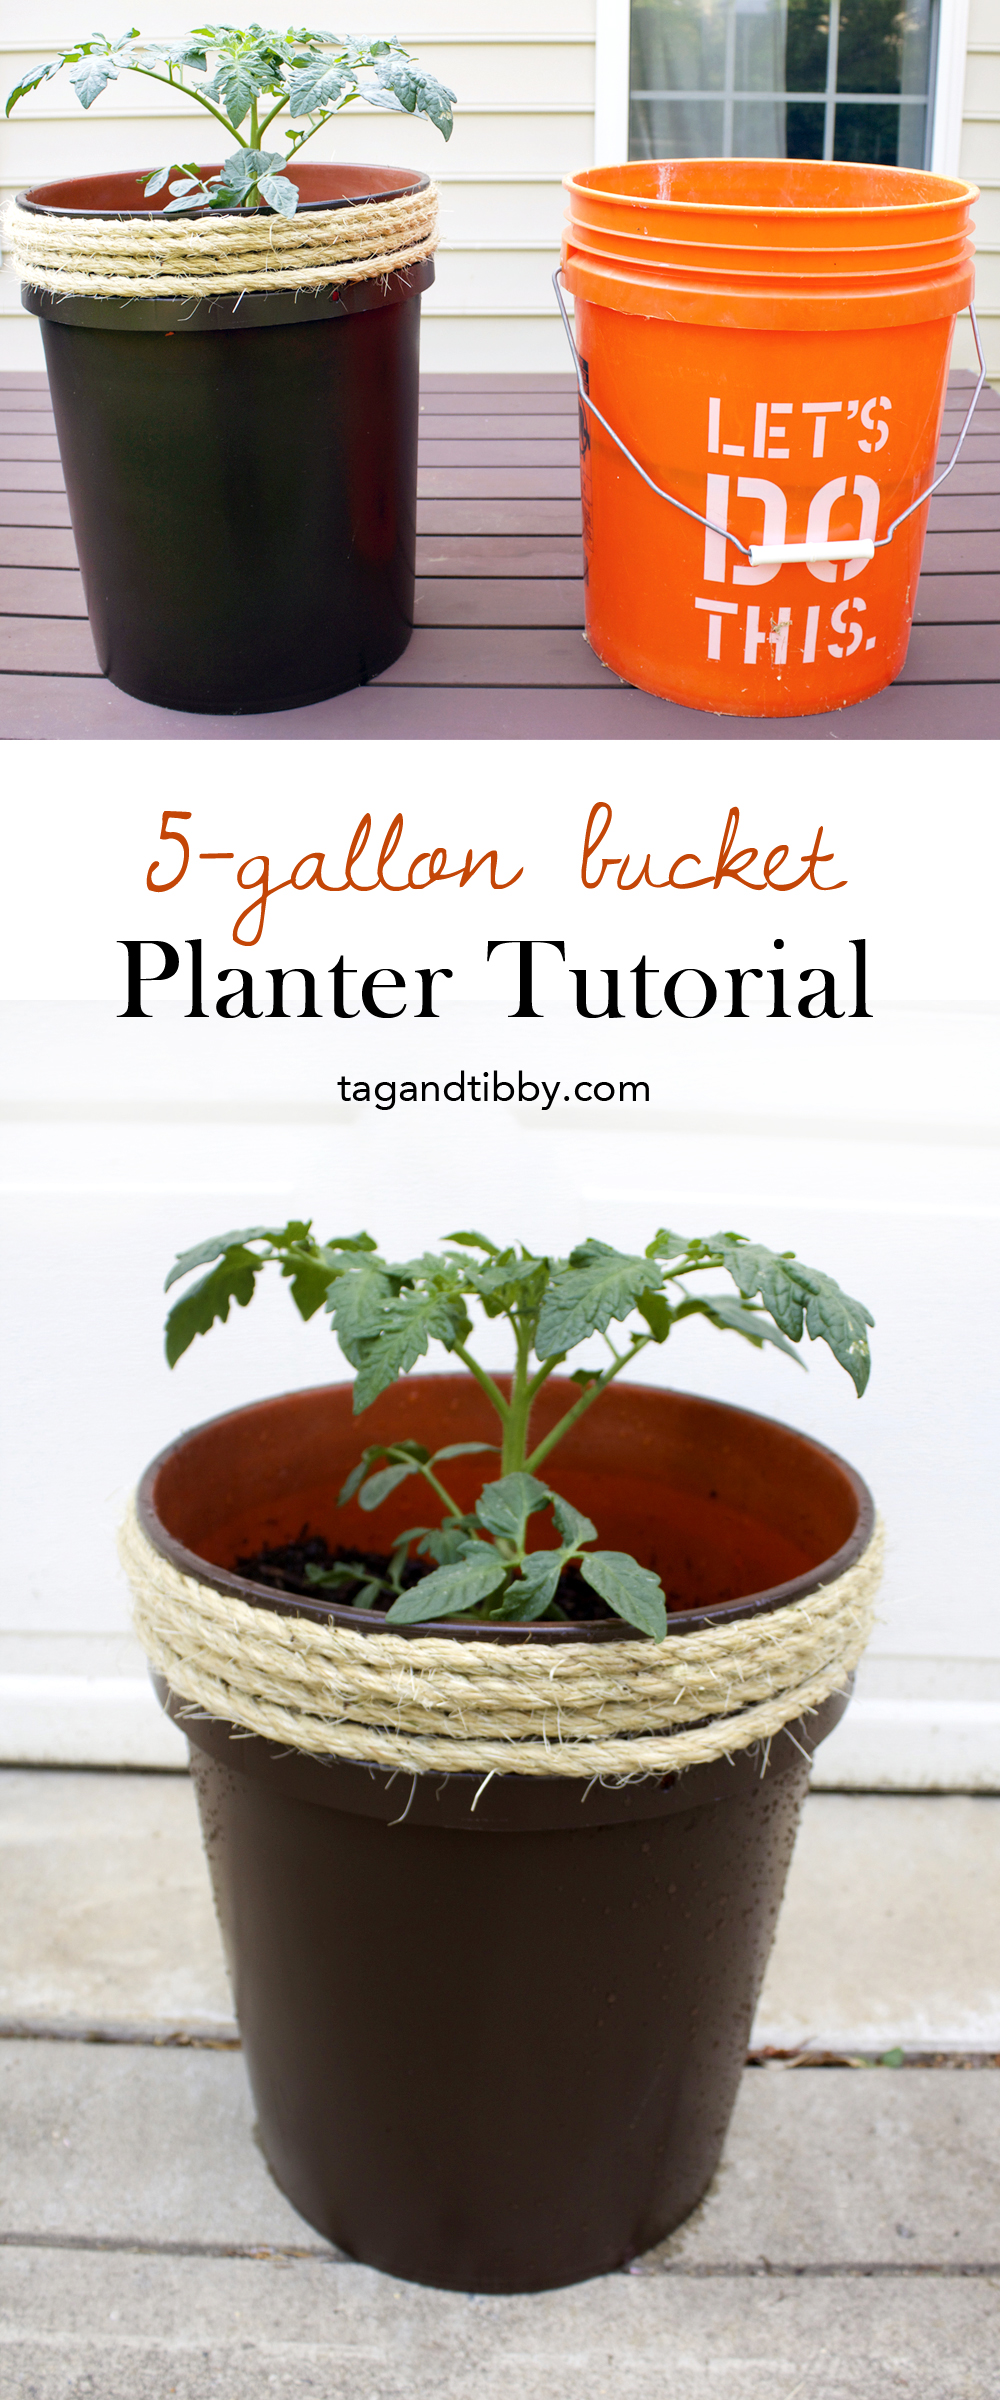 How to Make a Planter From a 5 Gallon Bucket